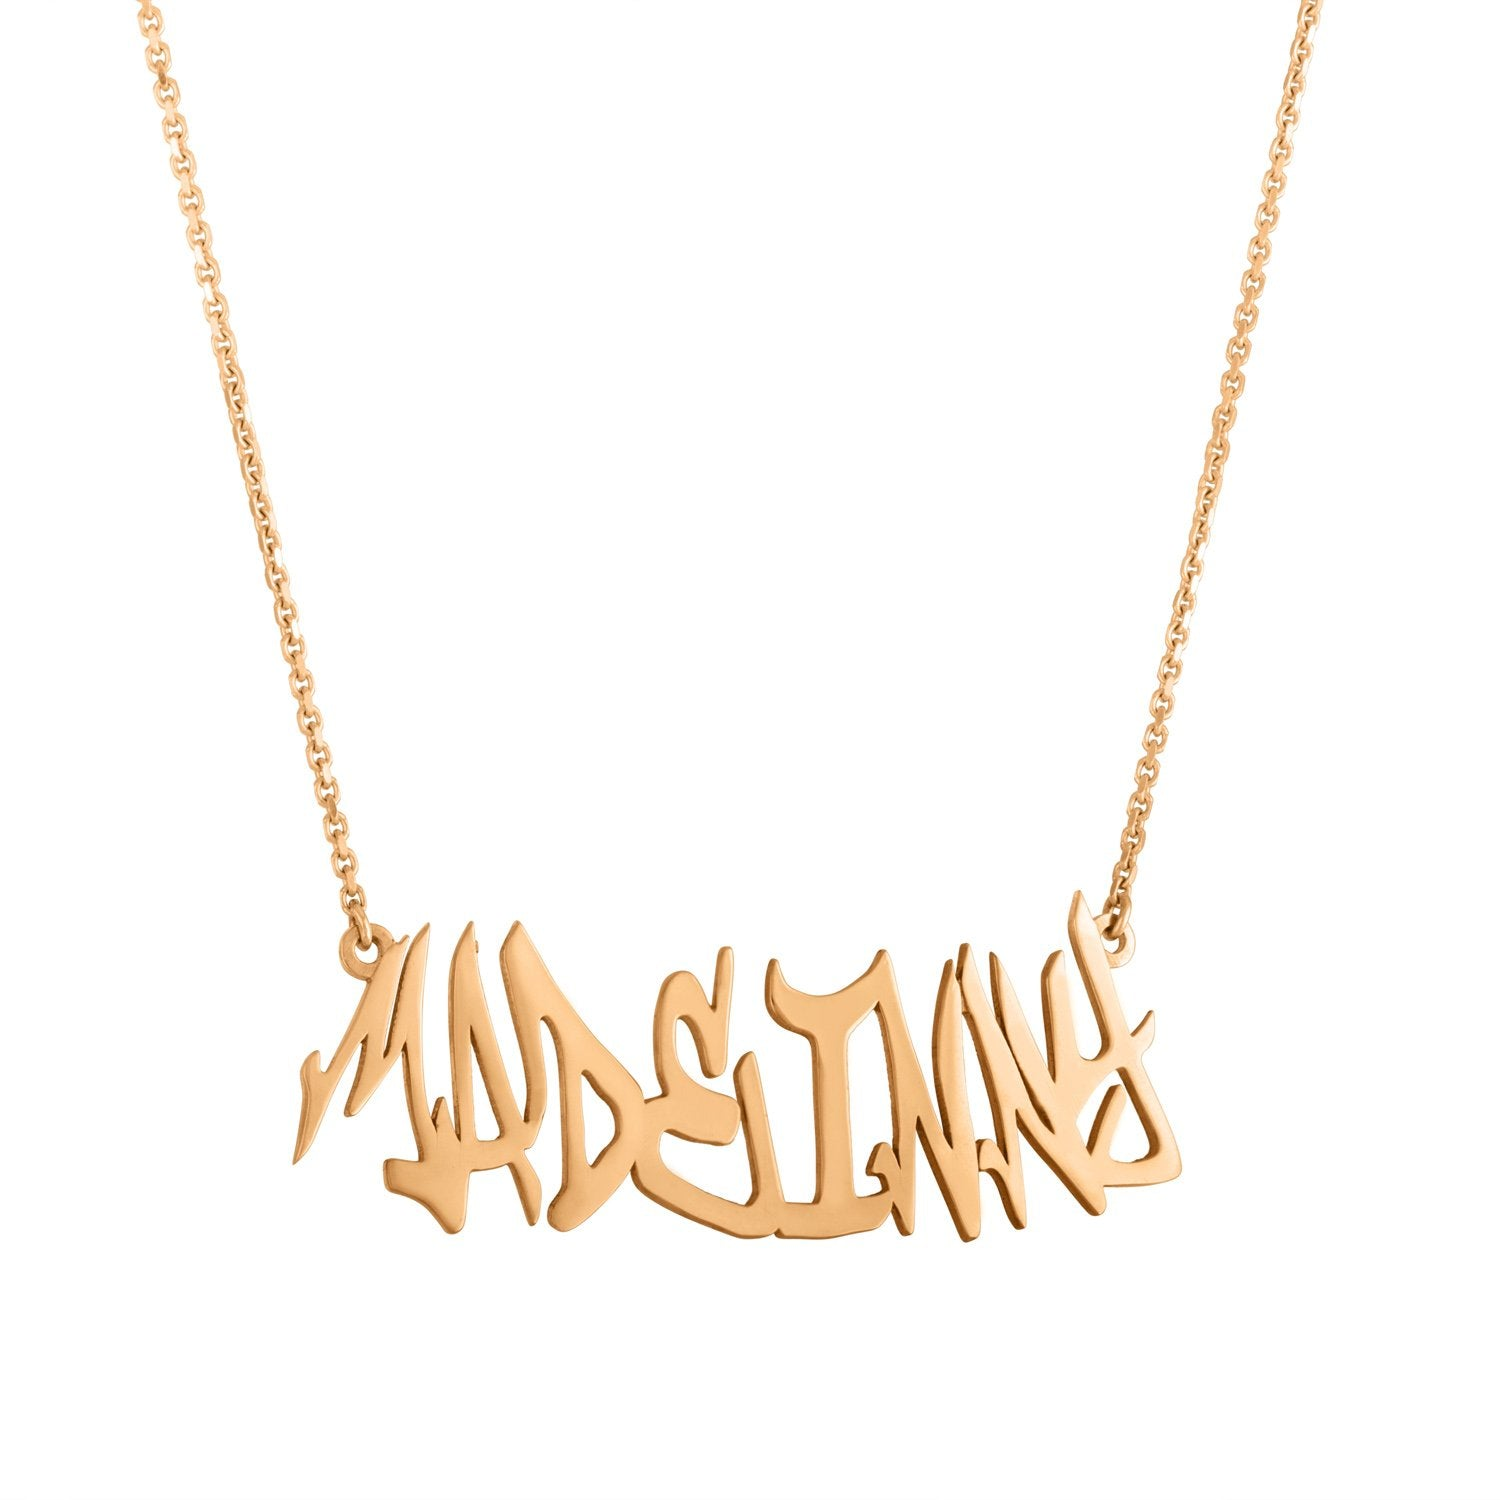 Graffiti Necklace